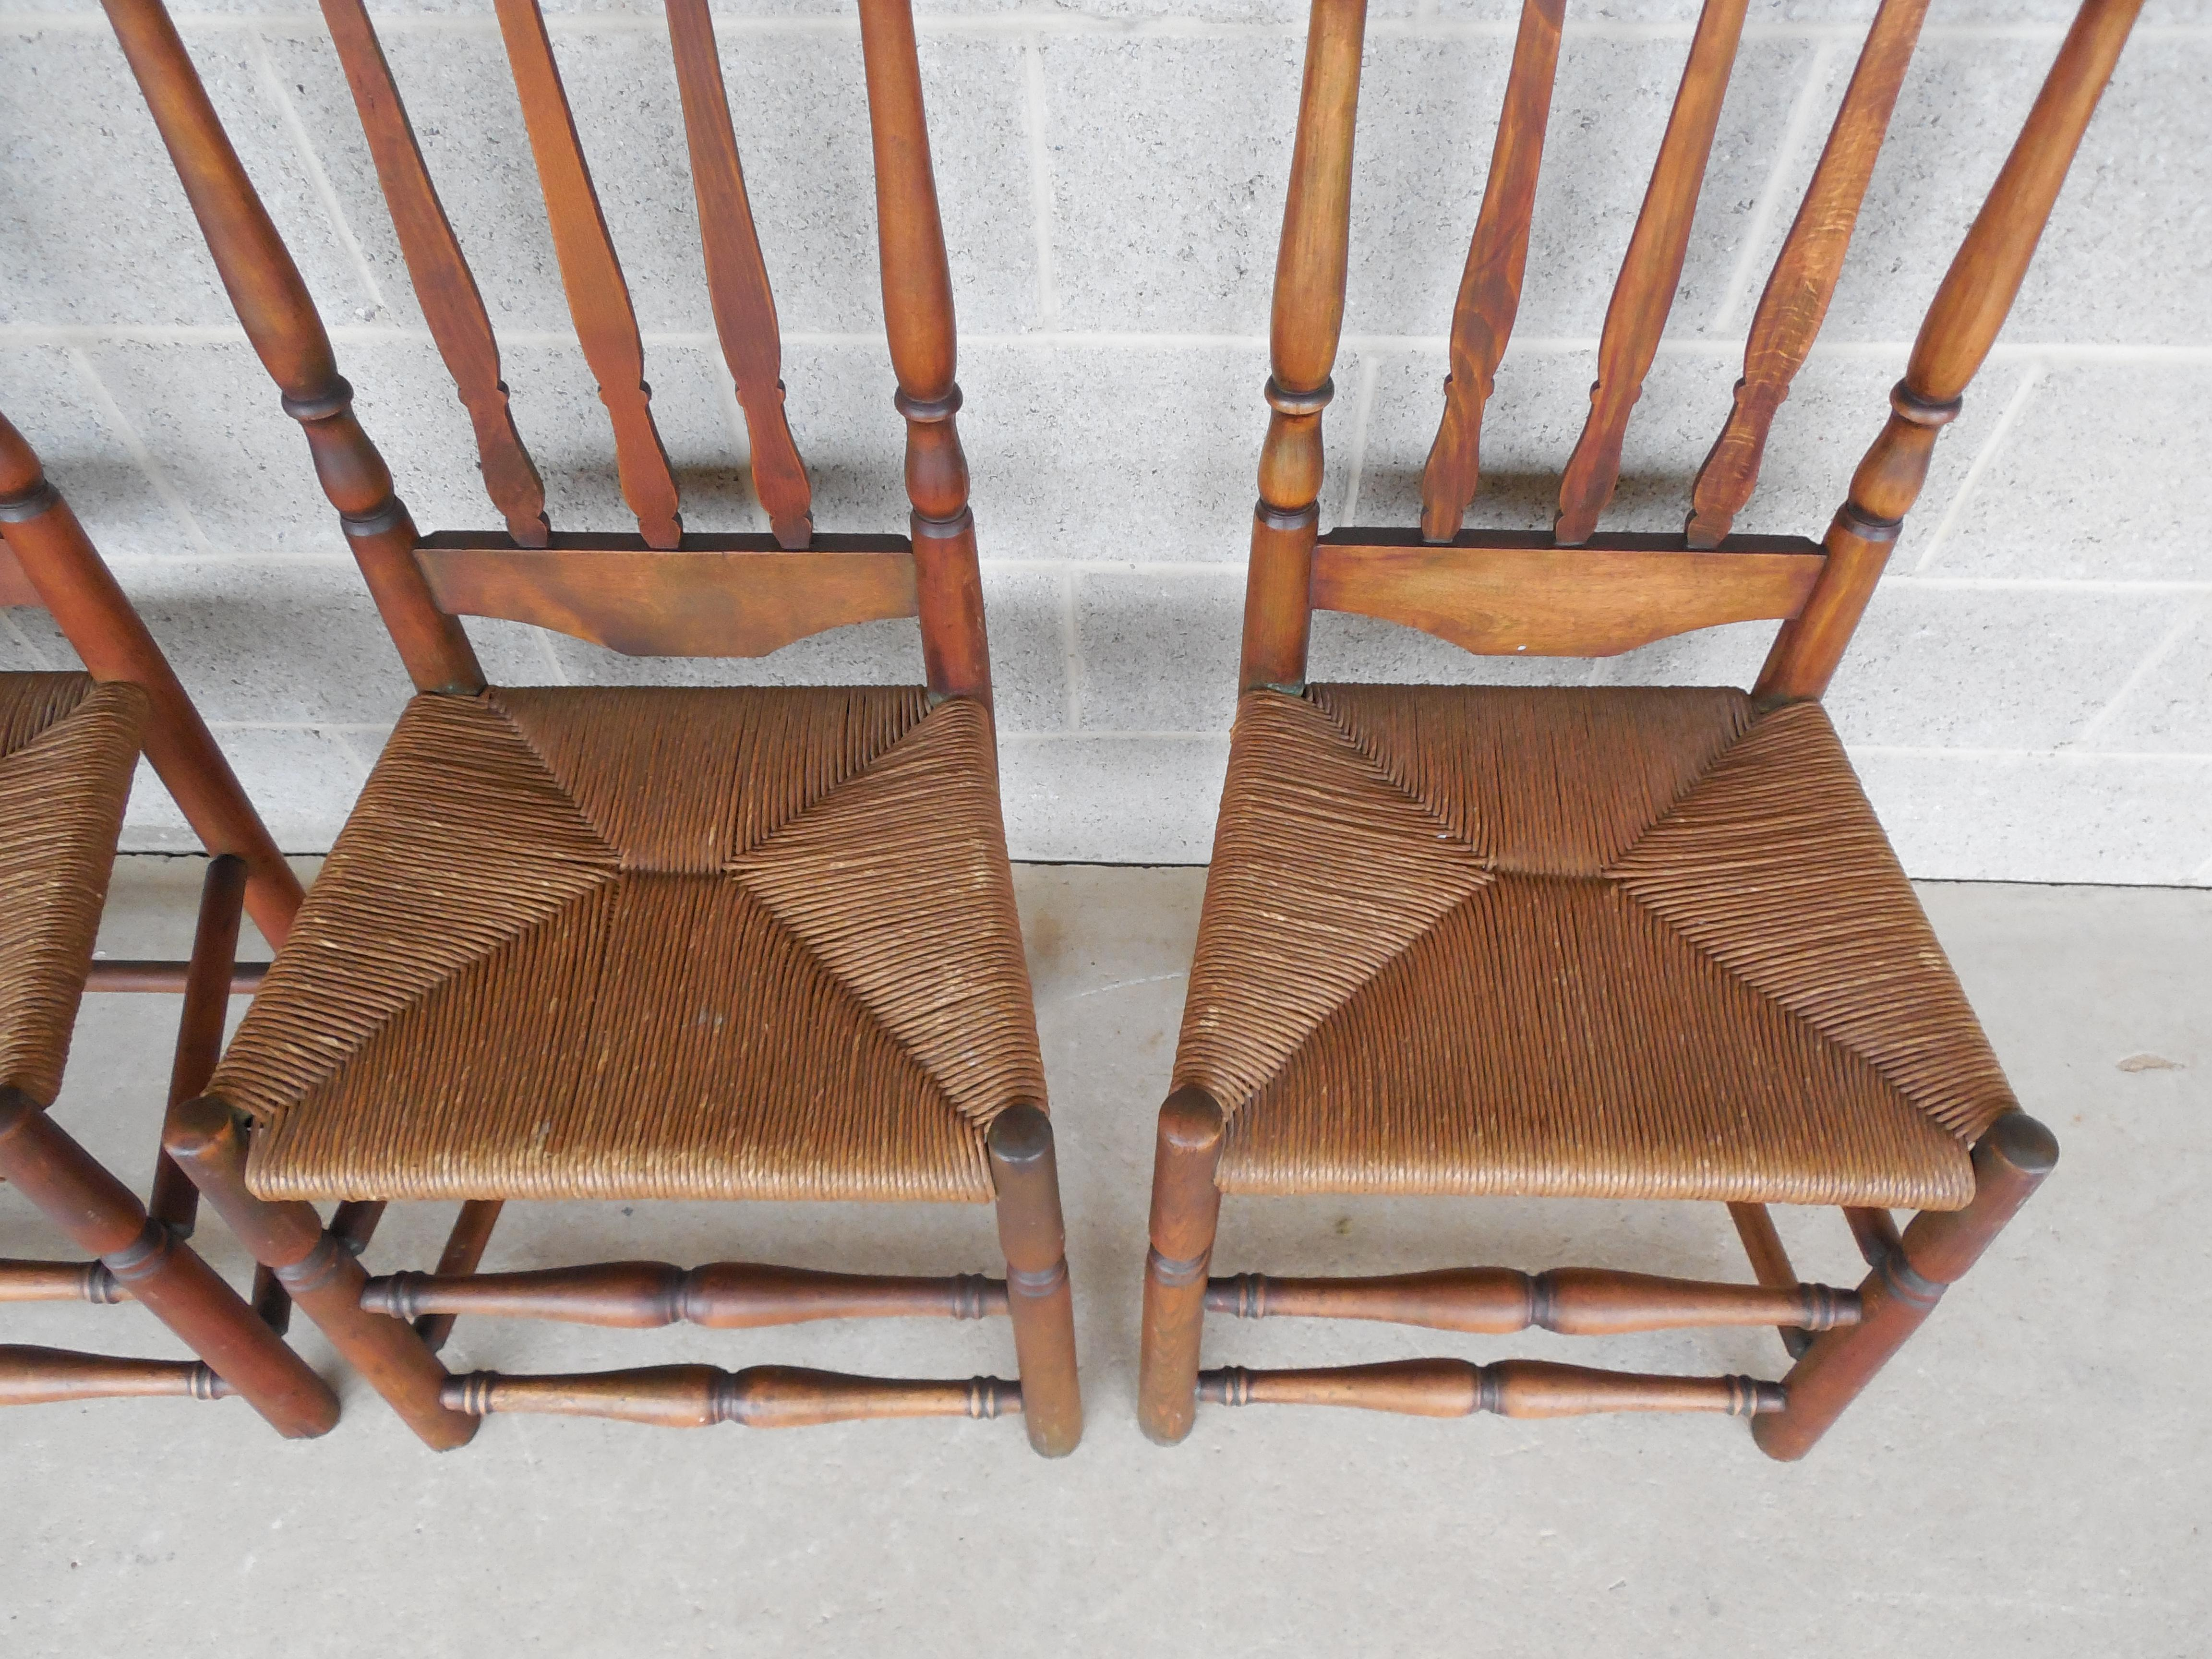 Charmant Set Of 6 Antique Turned Windsor Rush Bottom Chairs   Image 4 Of 12